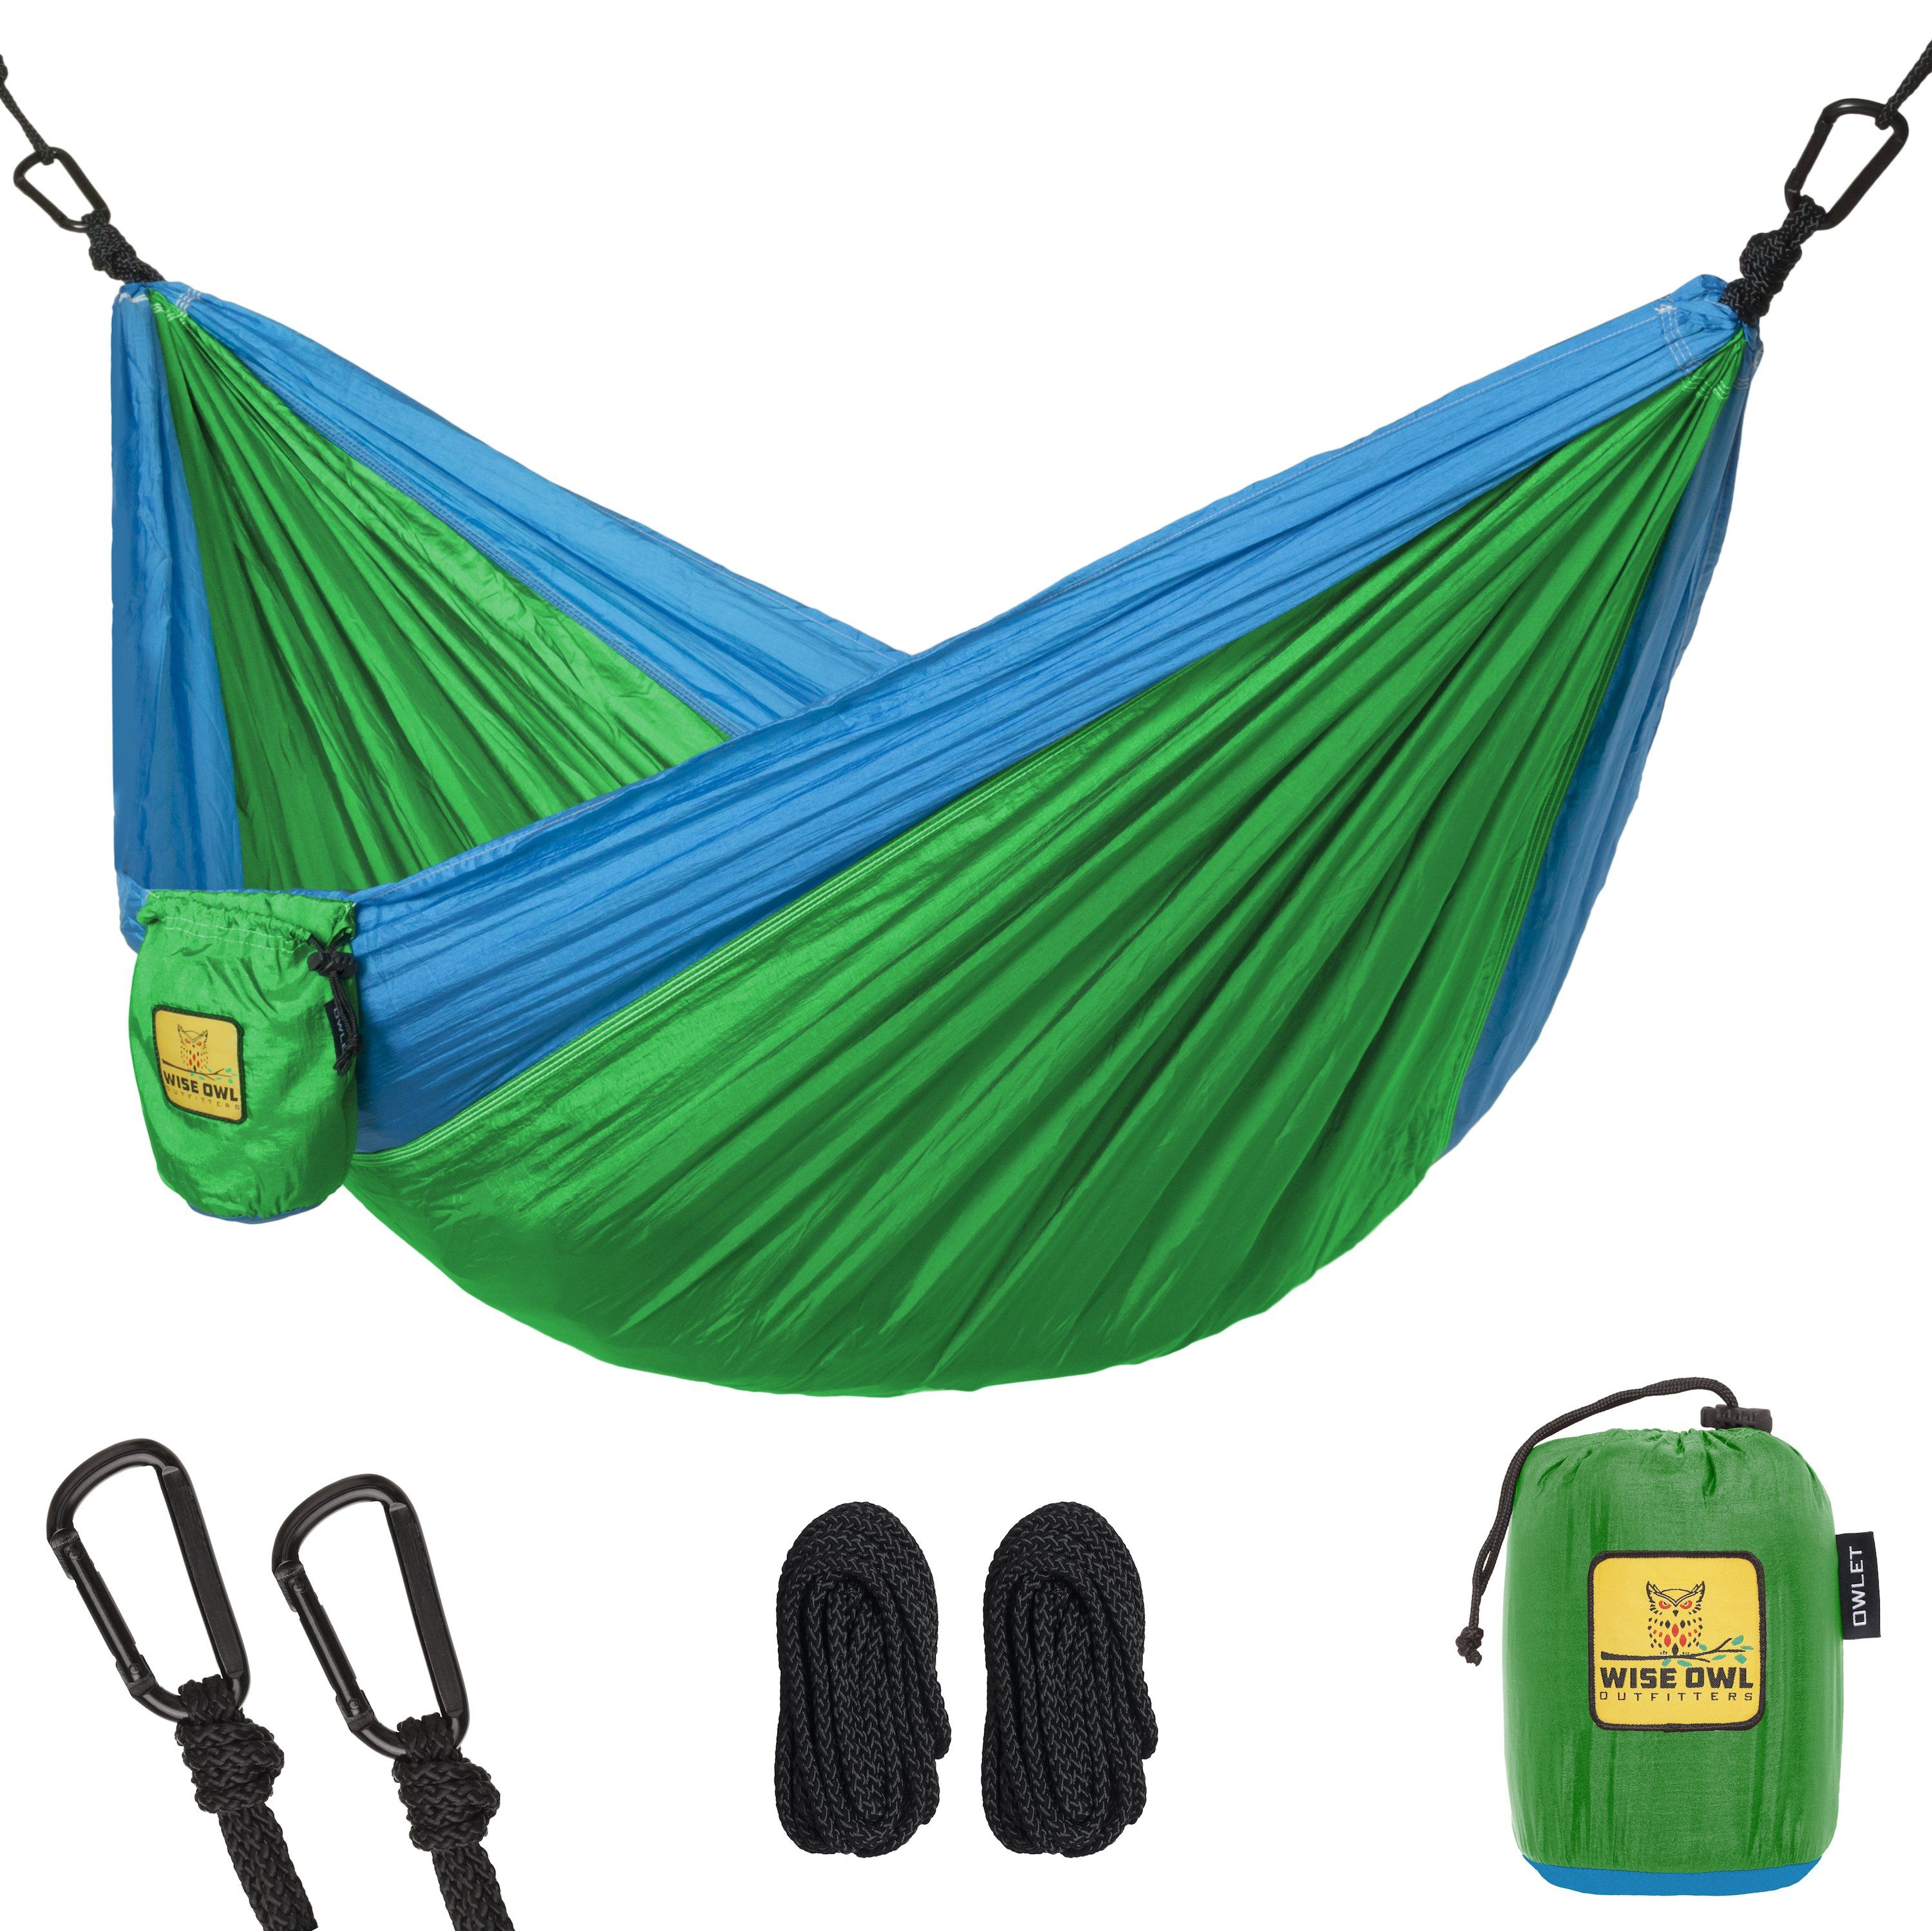 Owlet kids hammock u gear sling kids hammock and products